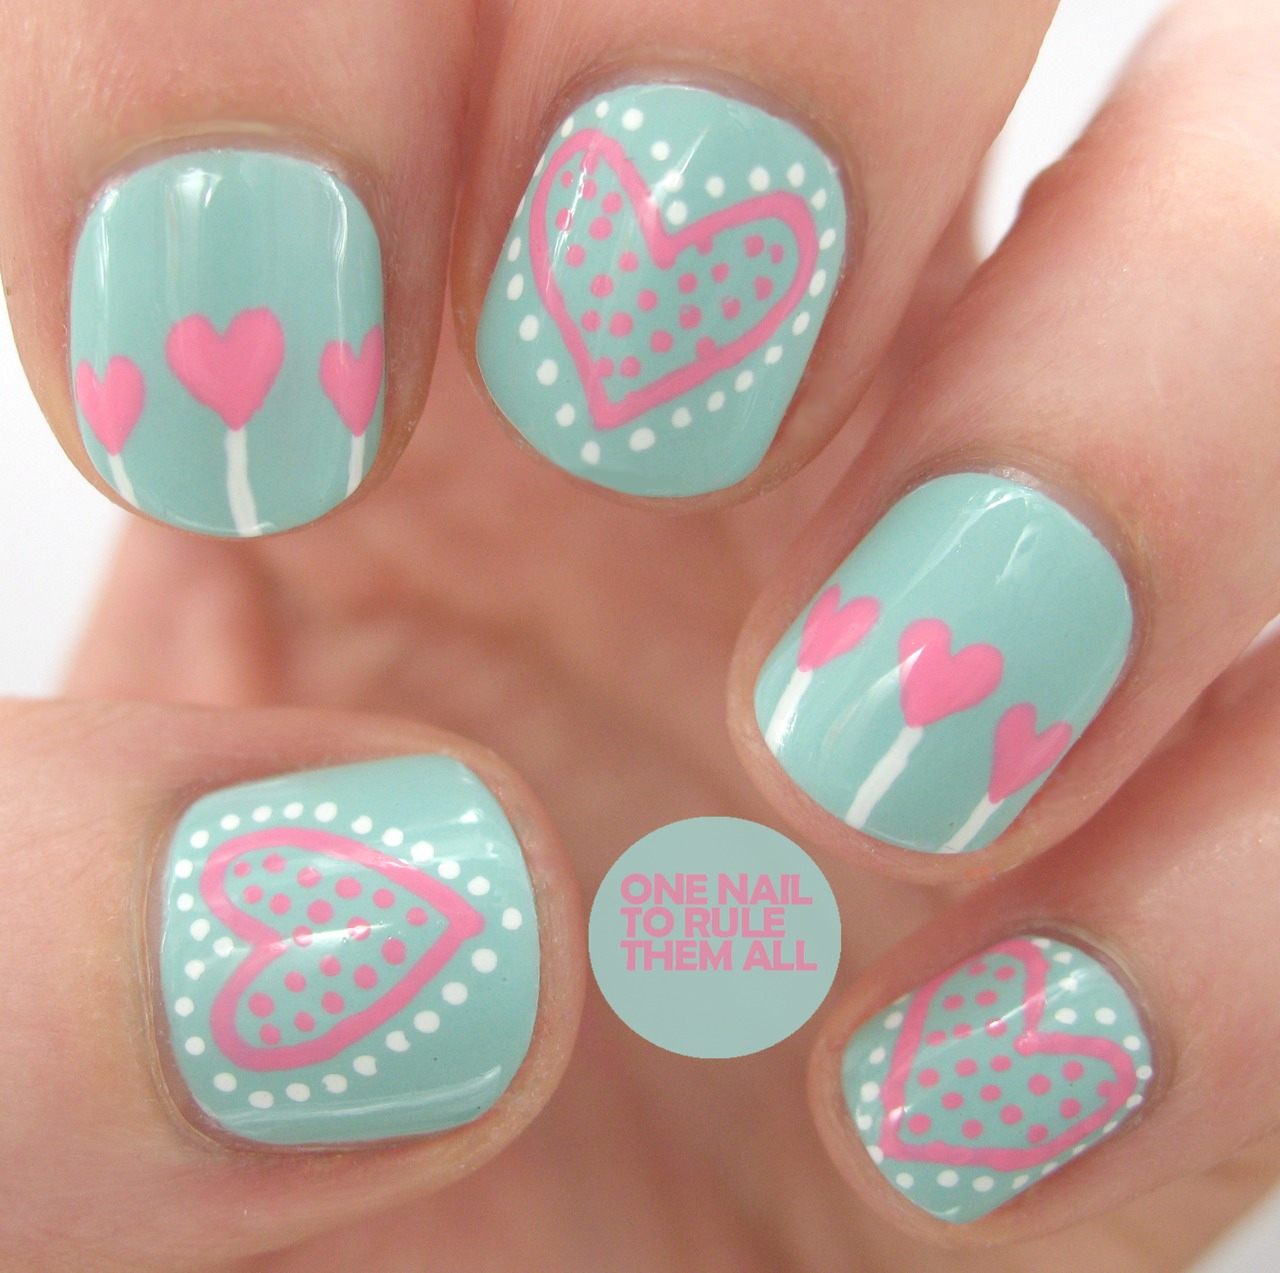 Eid Day Nail Designs For Women And Girls